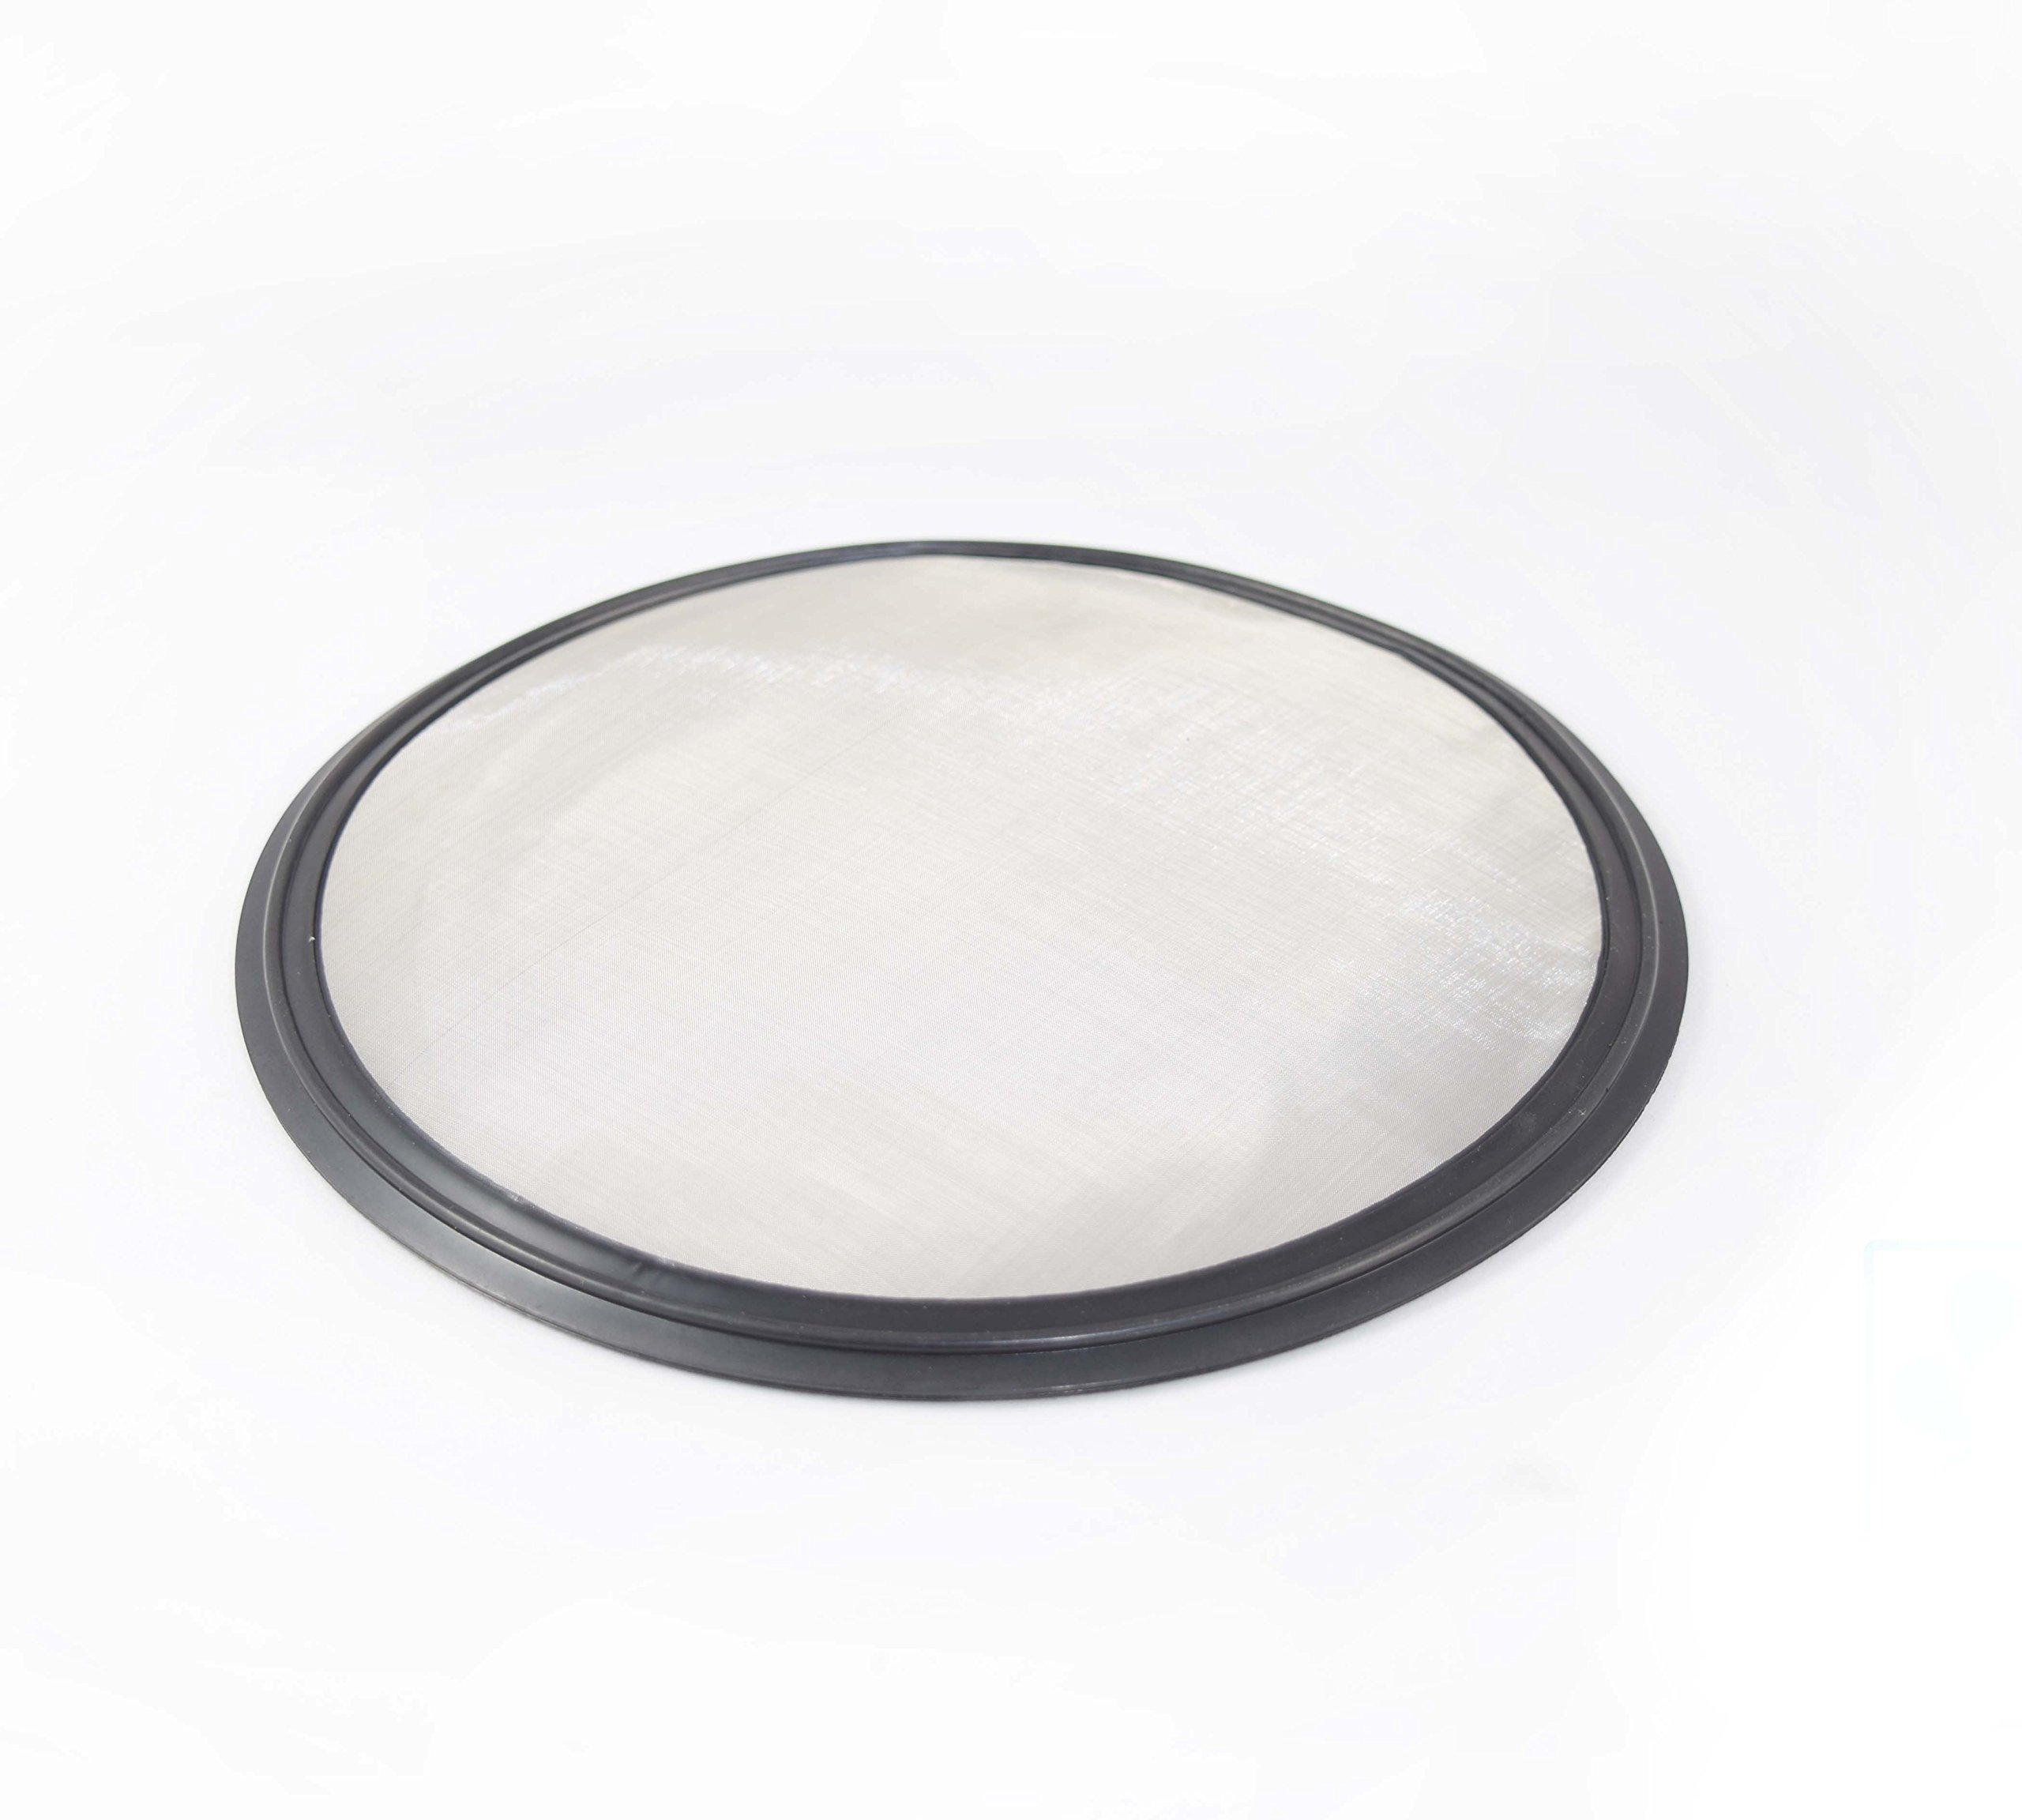 ARTESIAN SYSTEMS 20 Micron VITON/FKM Tri Clamp Screen Filter Gasket 316L (20Uf Micron/625Mesh) Stainless Steel Pharmaceutical Grade Filter Mesh. VITON With & FDA Certification (4'')